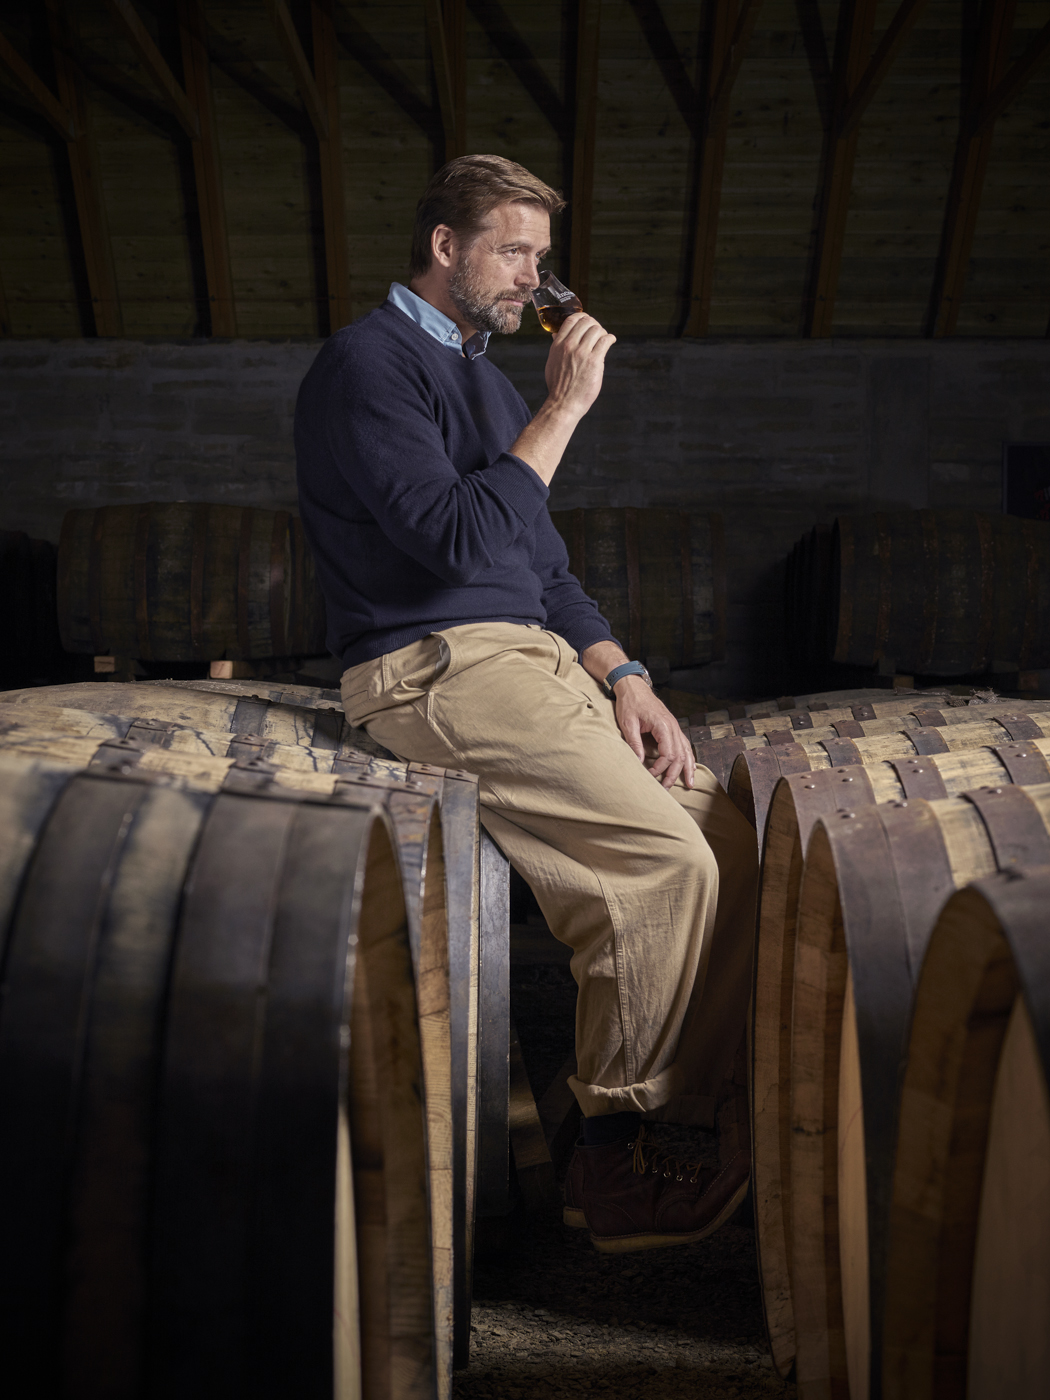 At the end of August I travelled to the village of Knock to photograph Patrick Grant of E.Tautz at Knockdhu Distillery. Patrick is collaborating with anCnoc to craft a bespoke print which will draw inspiration from their single malt's heritage, character, and indeed the time-honoured production methods used at Knockdhu distillery.